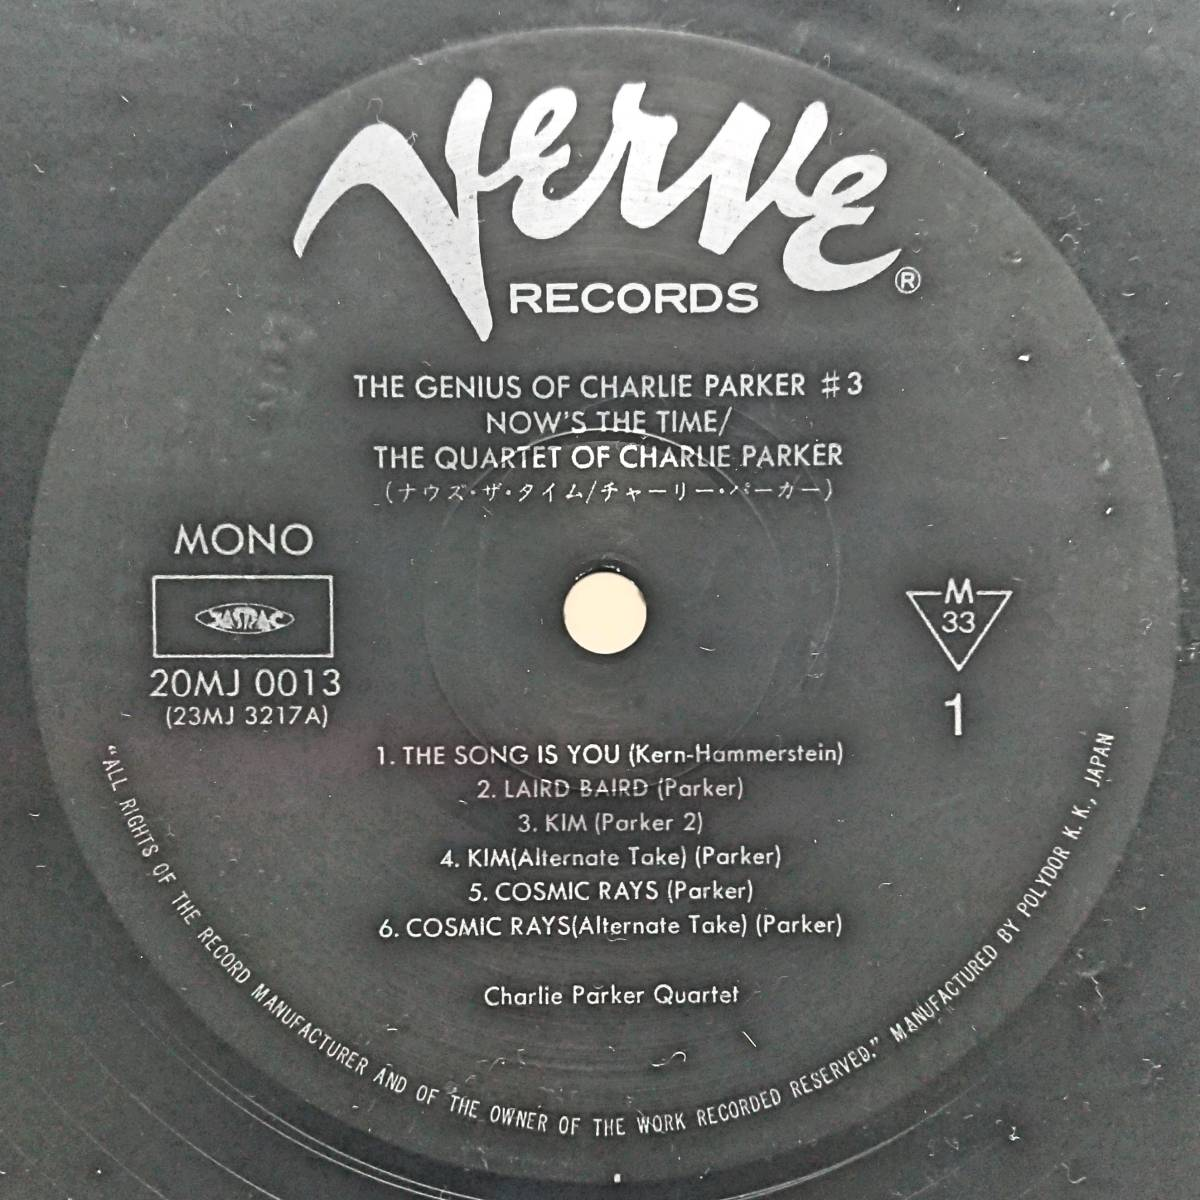 Charlie Parker(as)/Now's The Time チャーリー・パーカー(as)/ナウズ・ザ・タイム【国内帯付美盤】_画像9